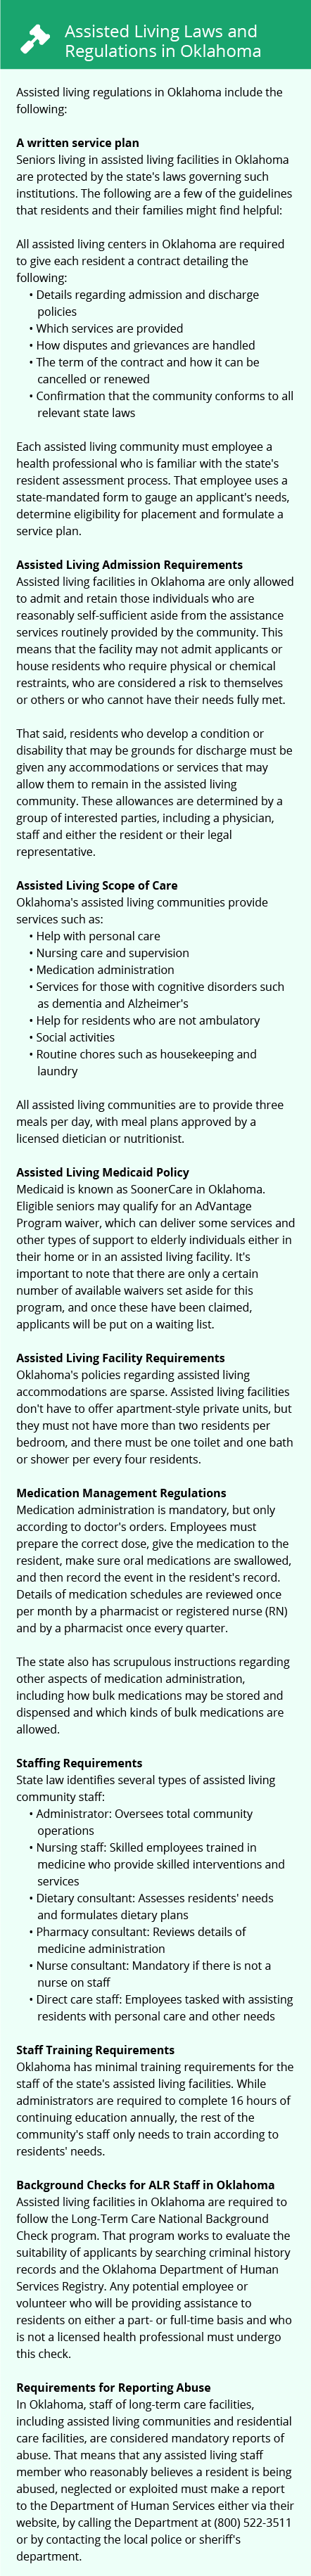 Laws and Regulations in Oklahoma